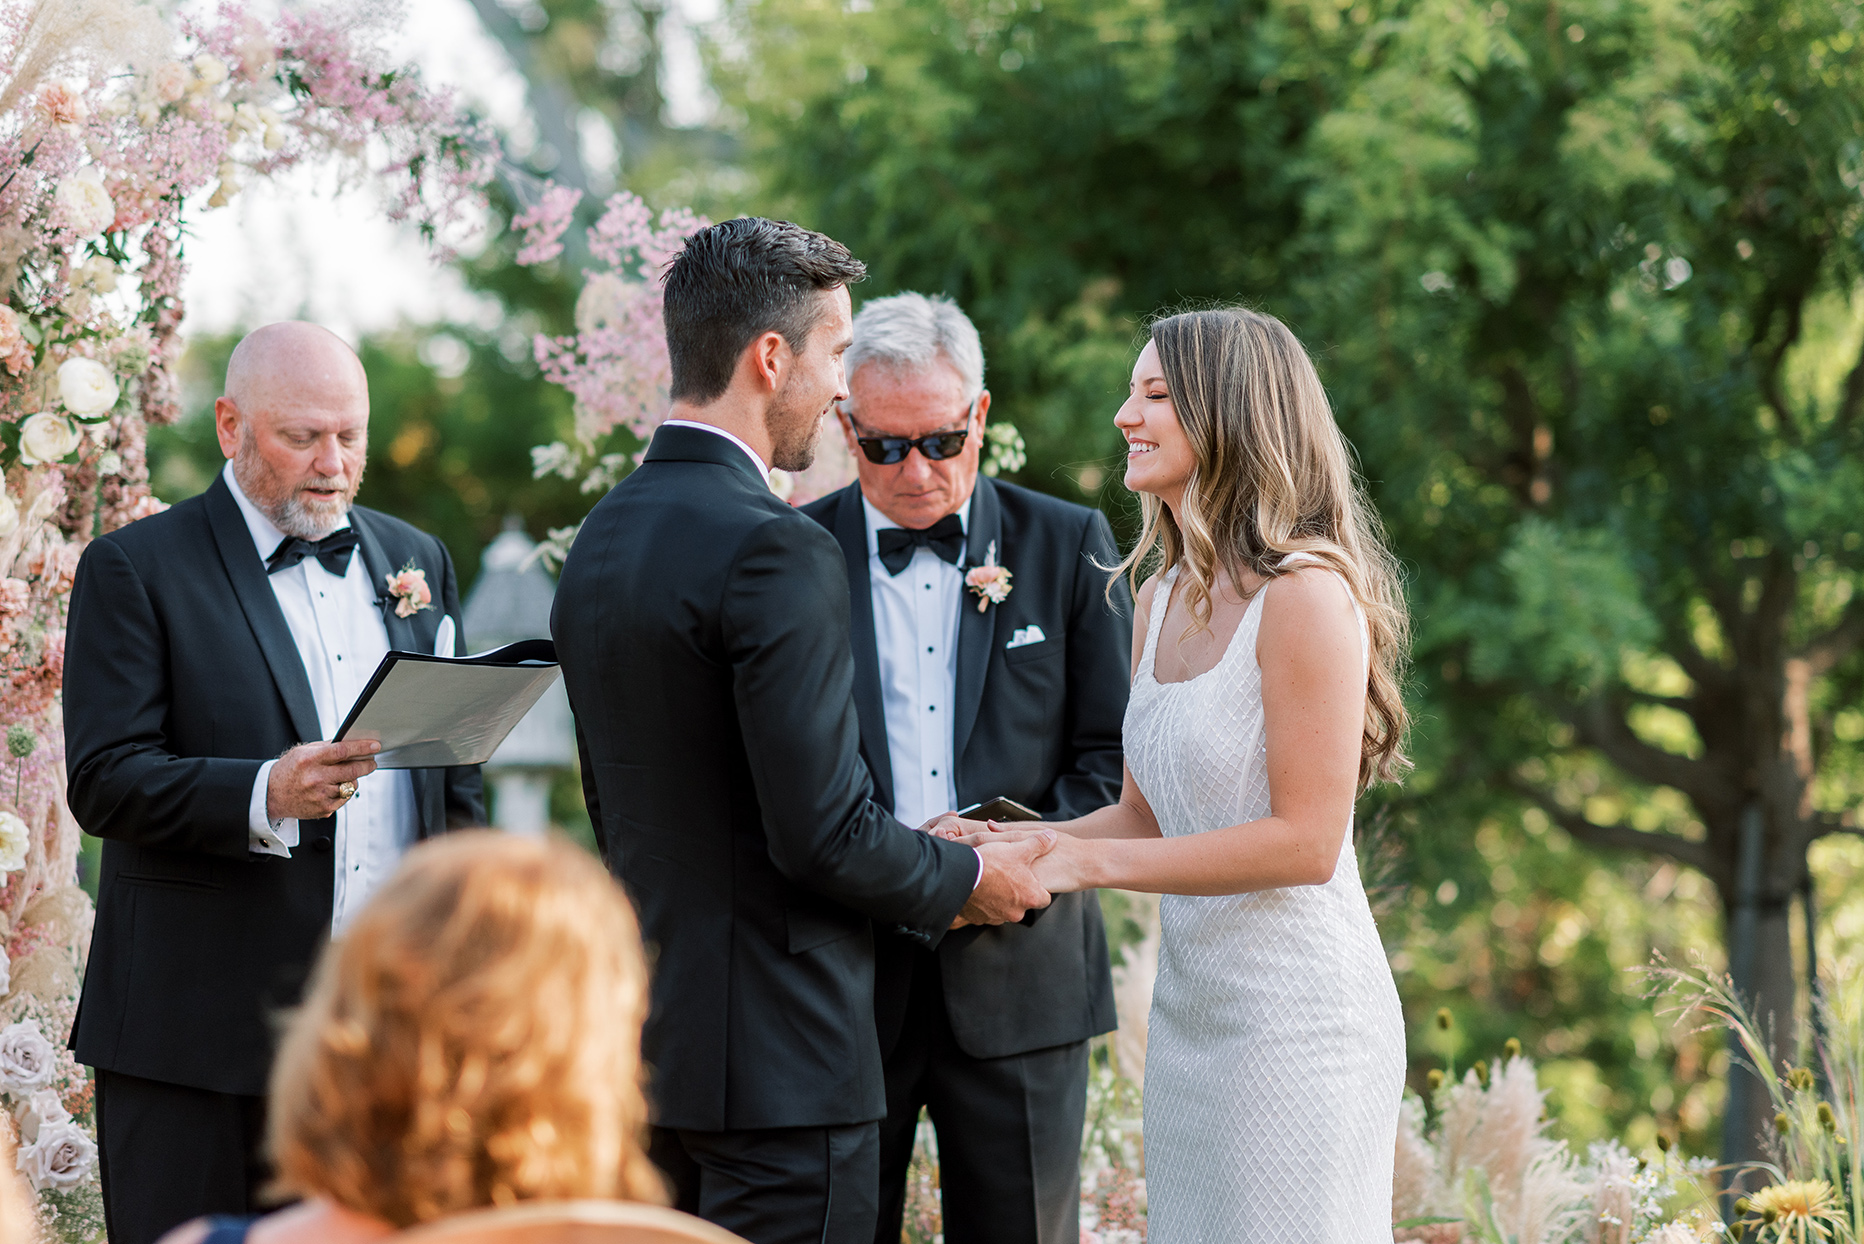 bride and groom exchanging vows during backyard wedding ceremony